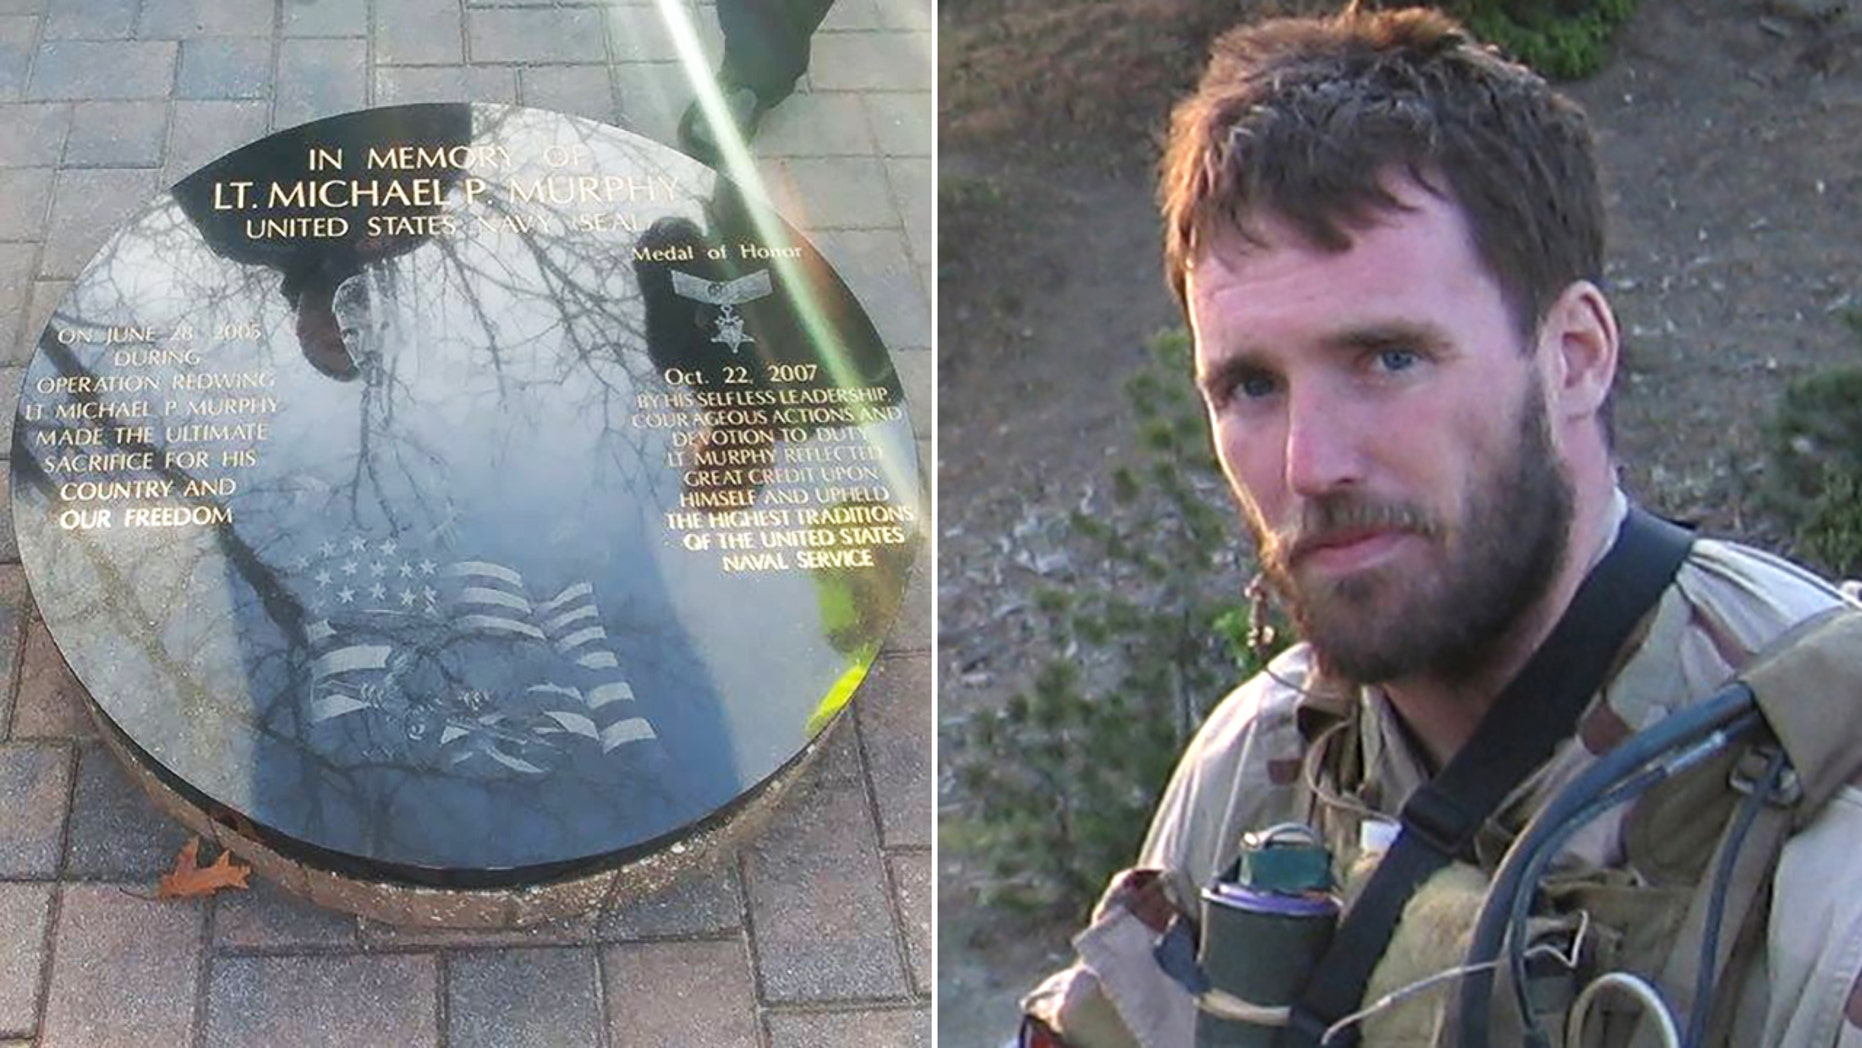 A new memorial honoring the late Navy SEAL and Medal of Honor recipient Lt. Michael P. Murphy was installed Thursday at a park in Lake Ronkonkoma, N.Y., after the original was vandalized last July.